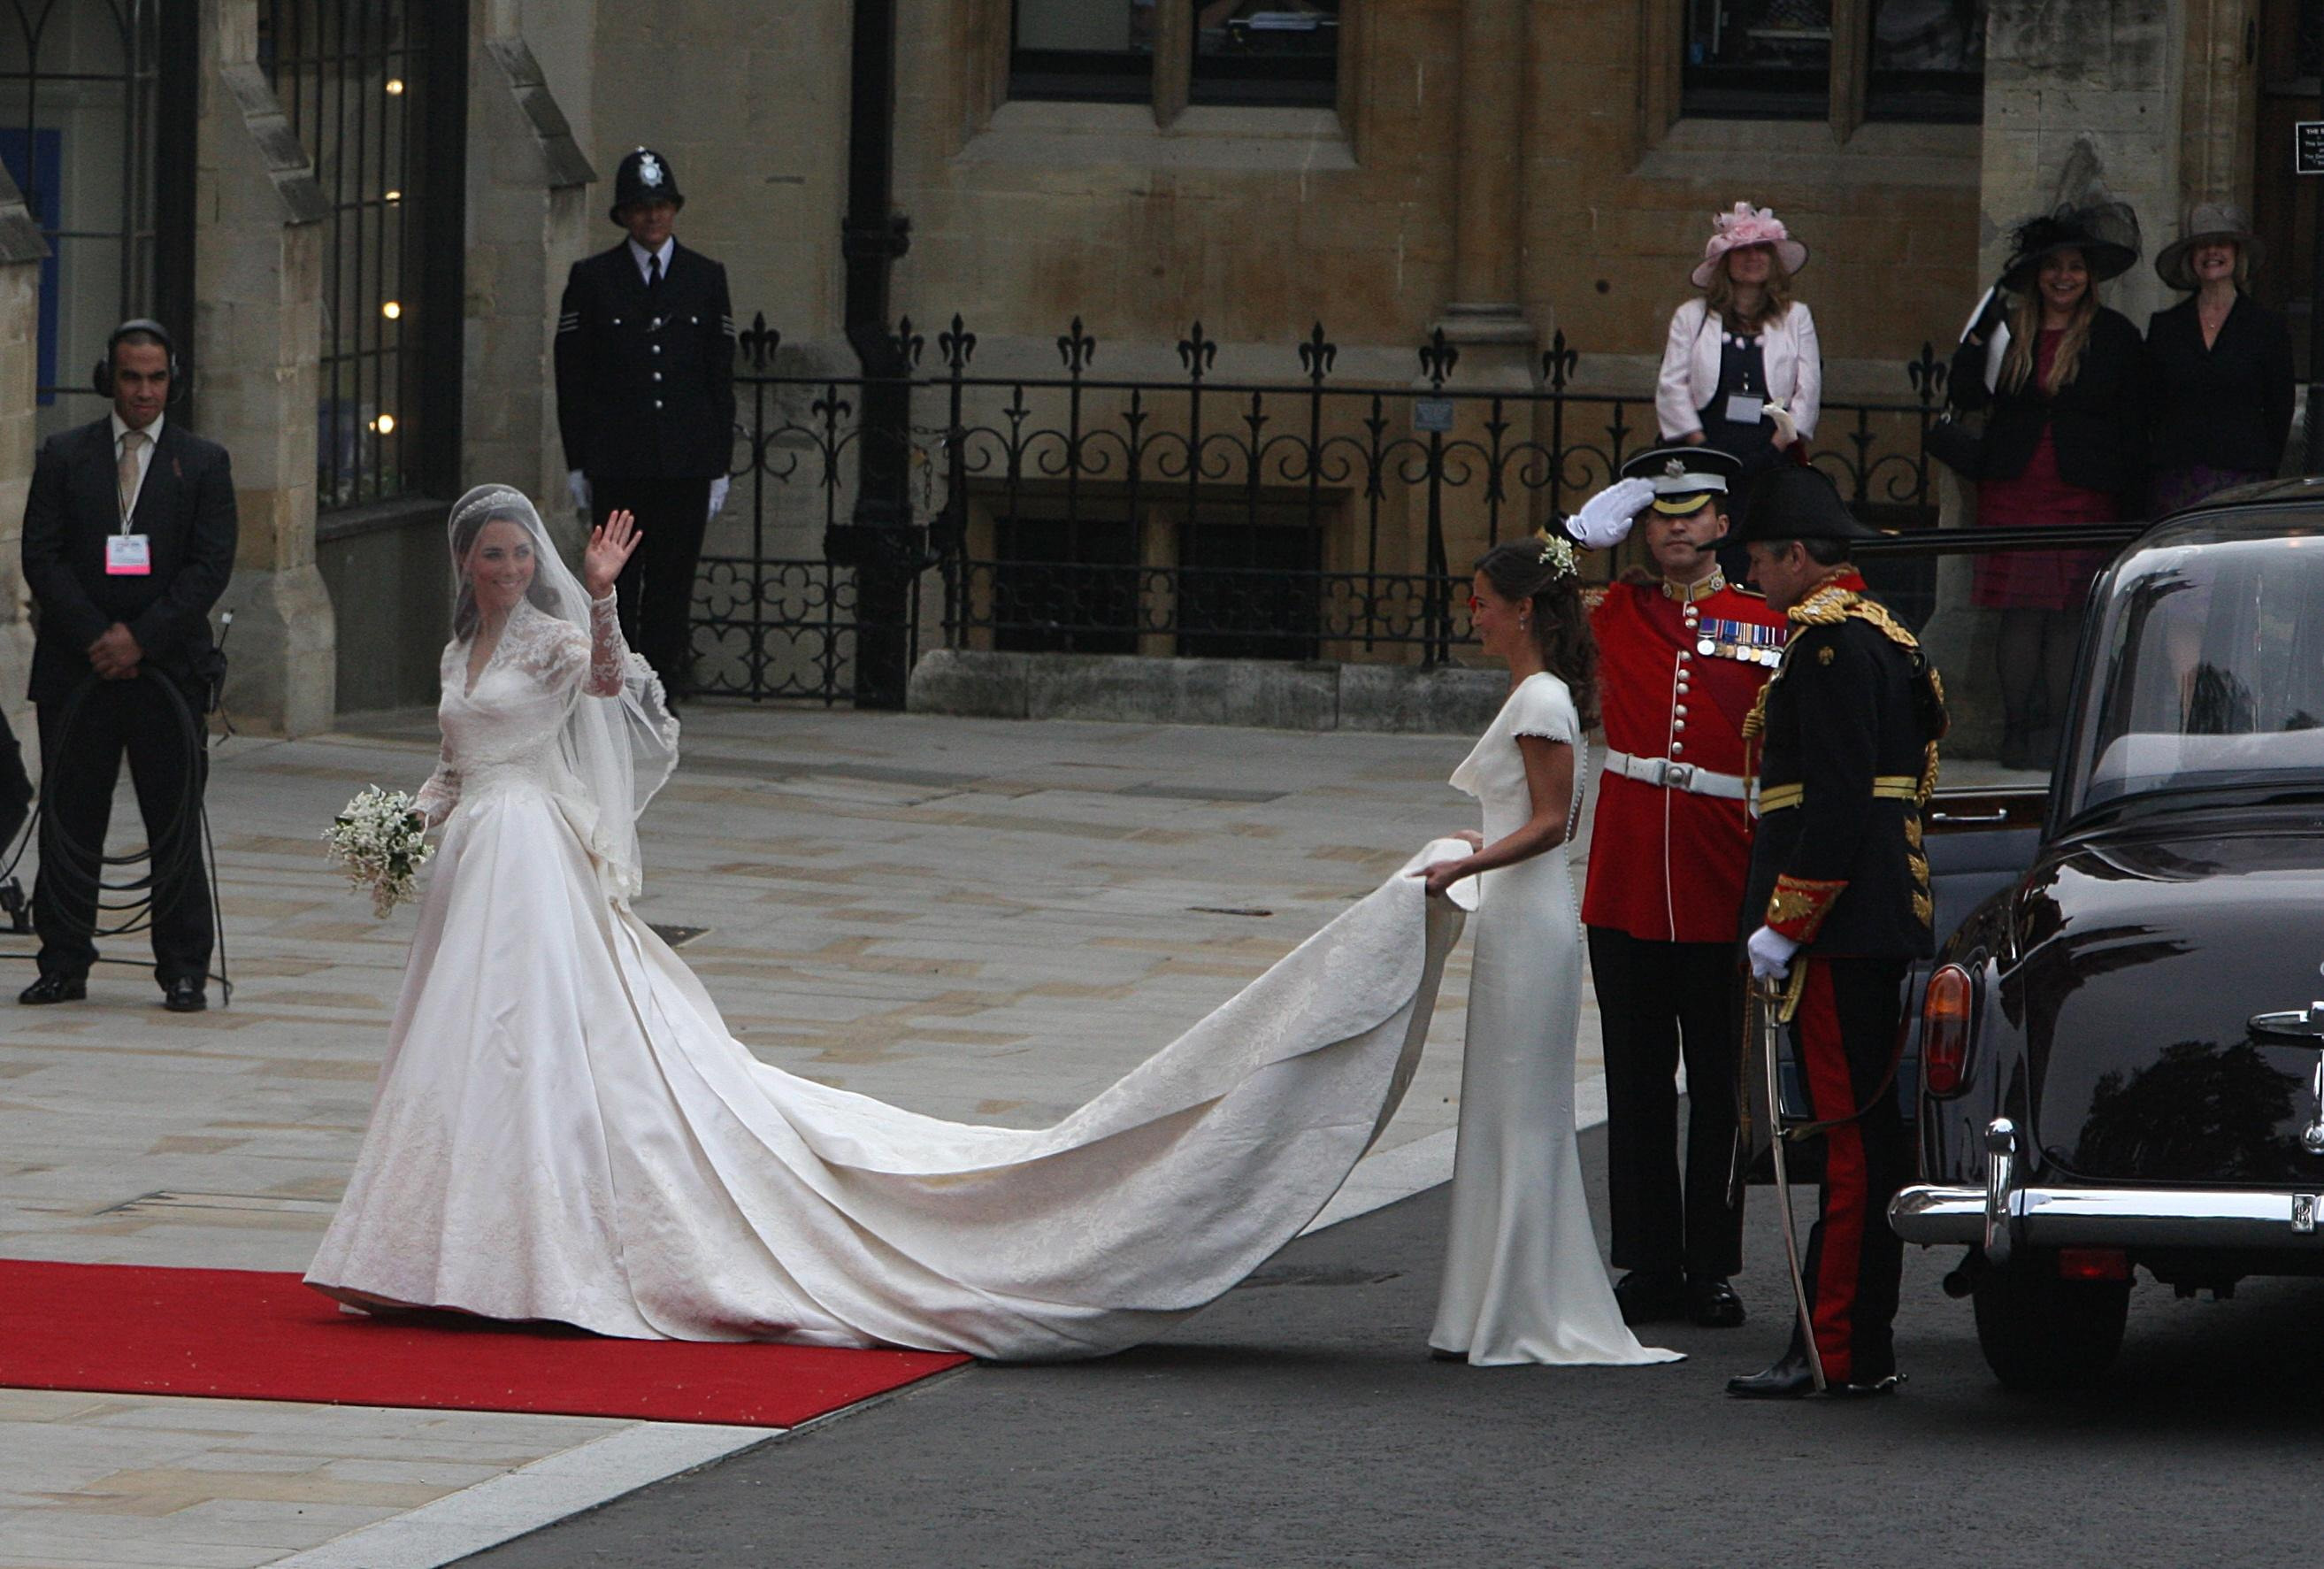 Kate Middleton waves as she arrives at Westminster Abbey where she is helped with her dress by her sister Pippa ahead of her wedding with Prince William.